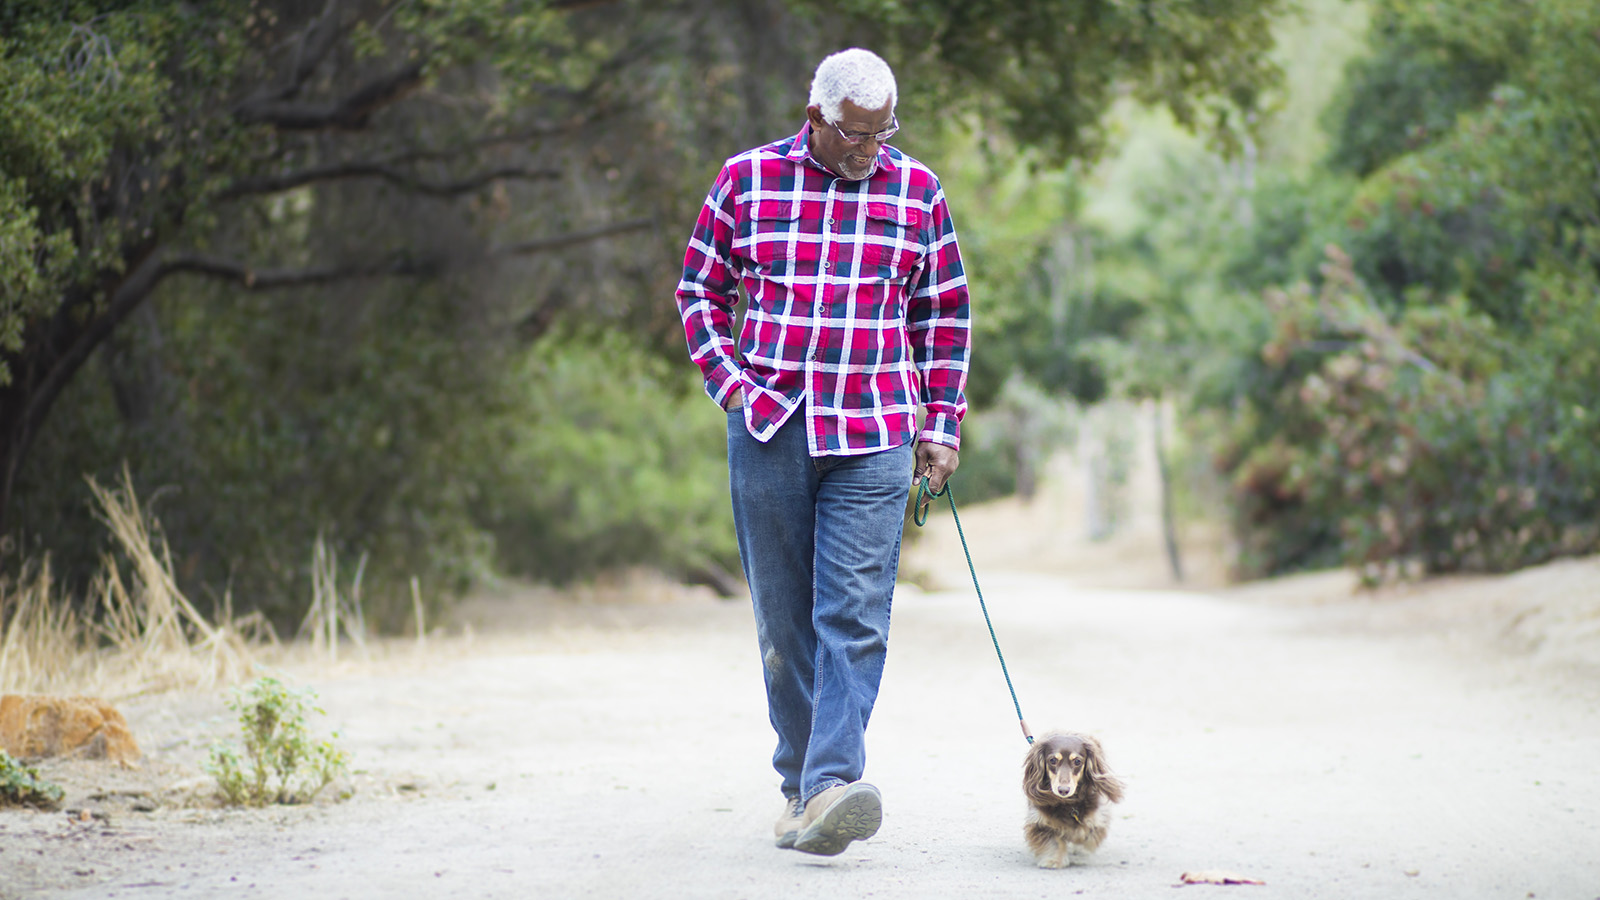 5 Tips for Walking Your Dog Safely